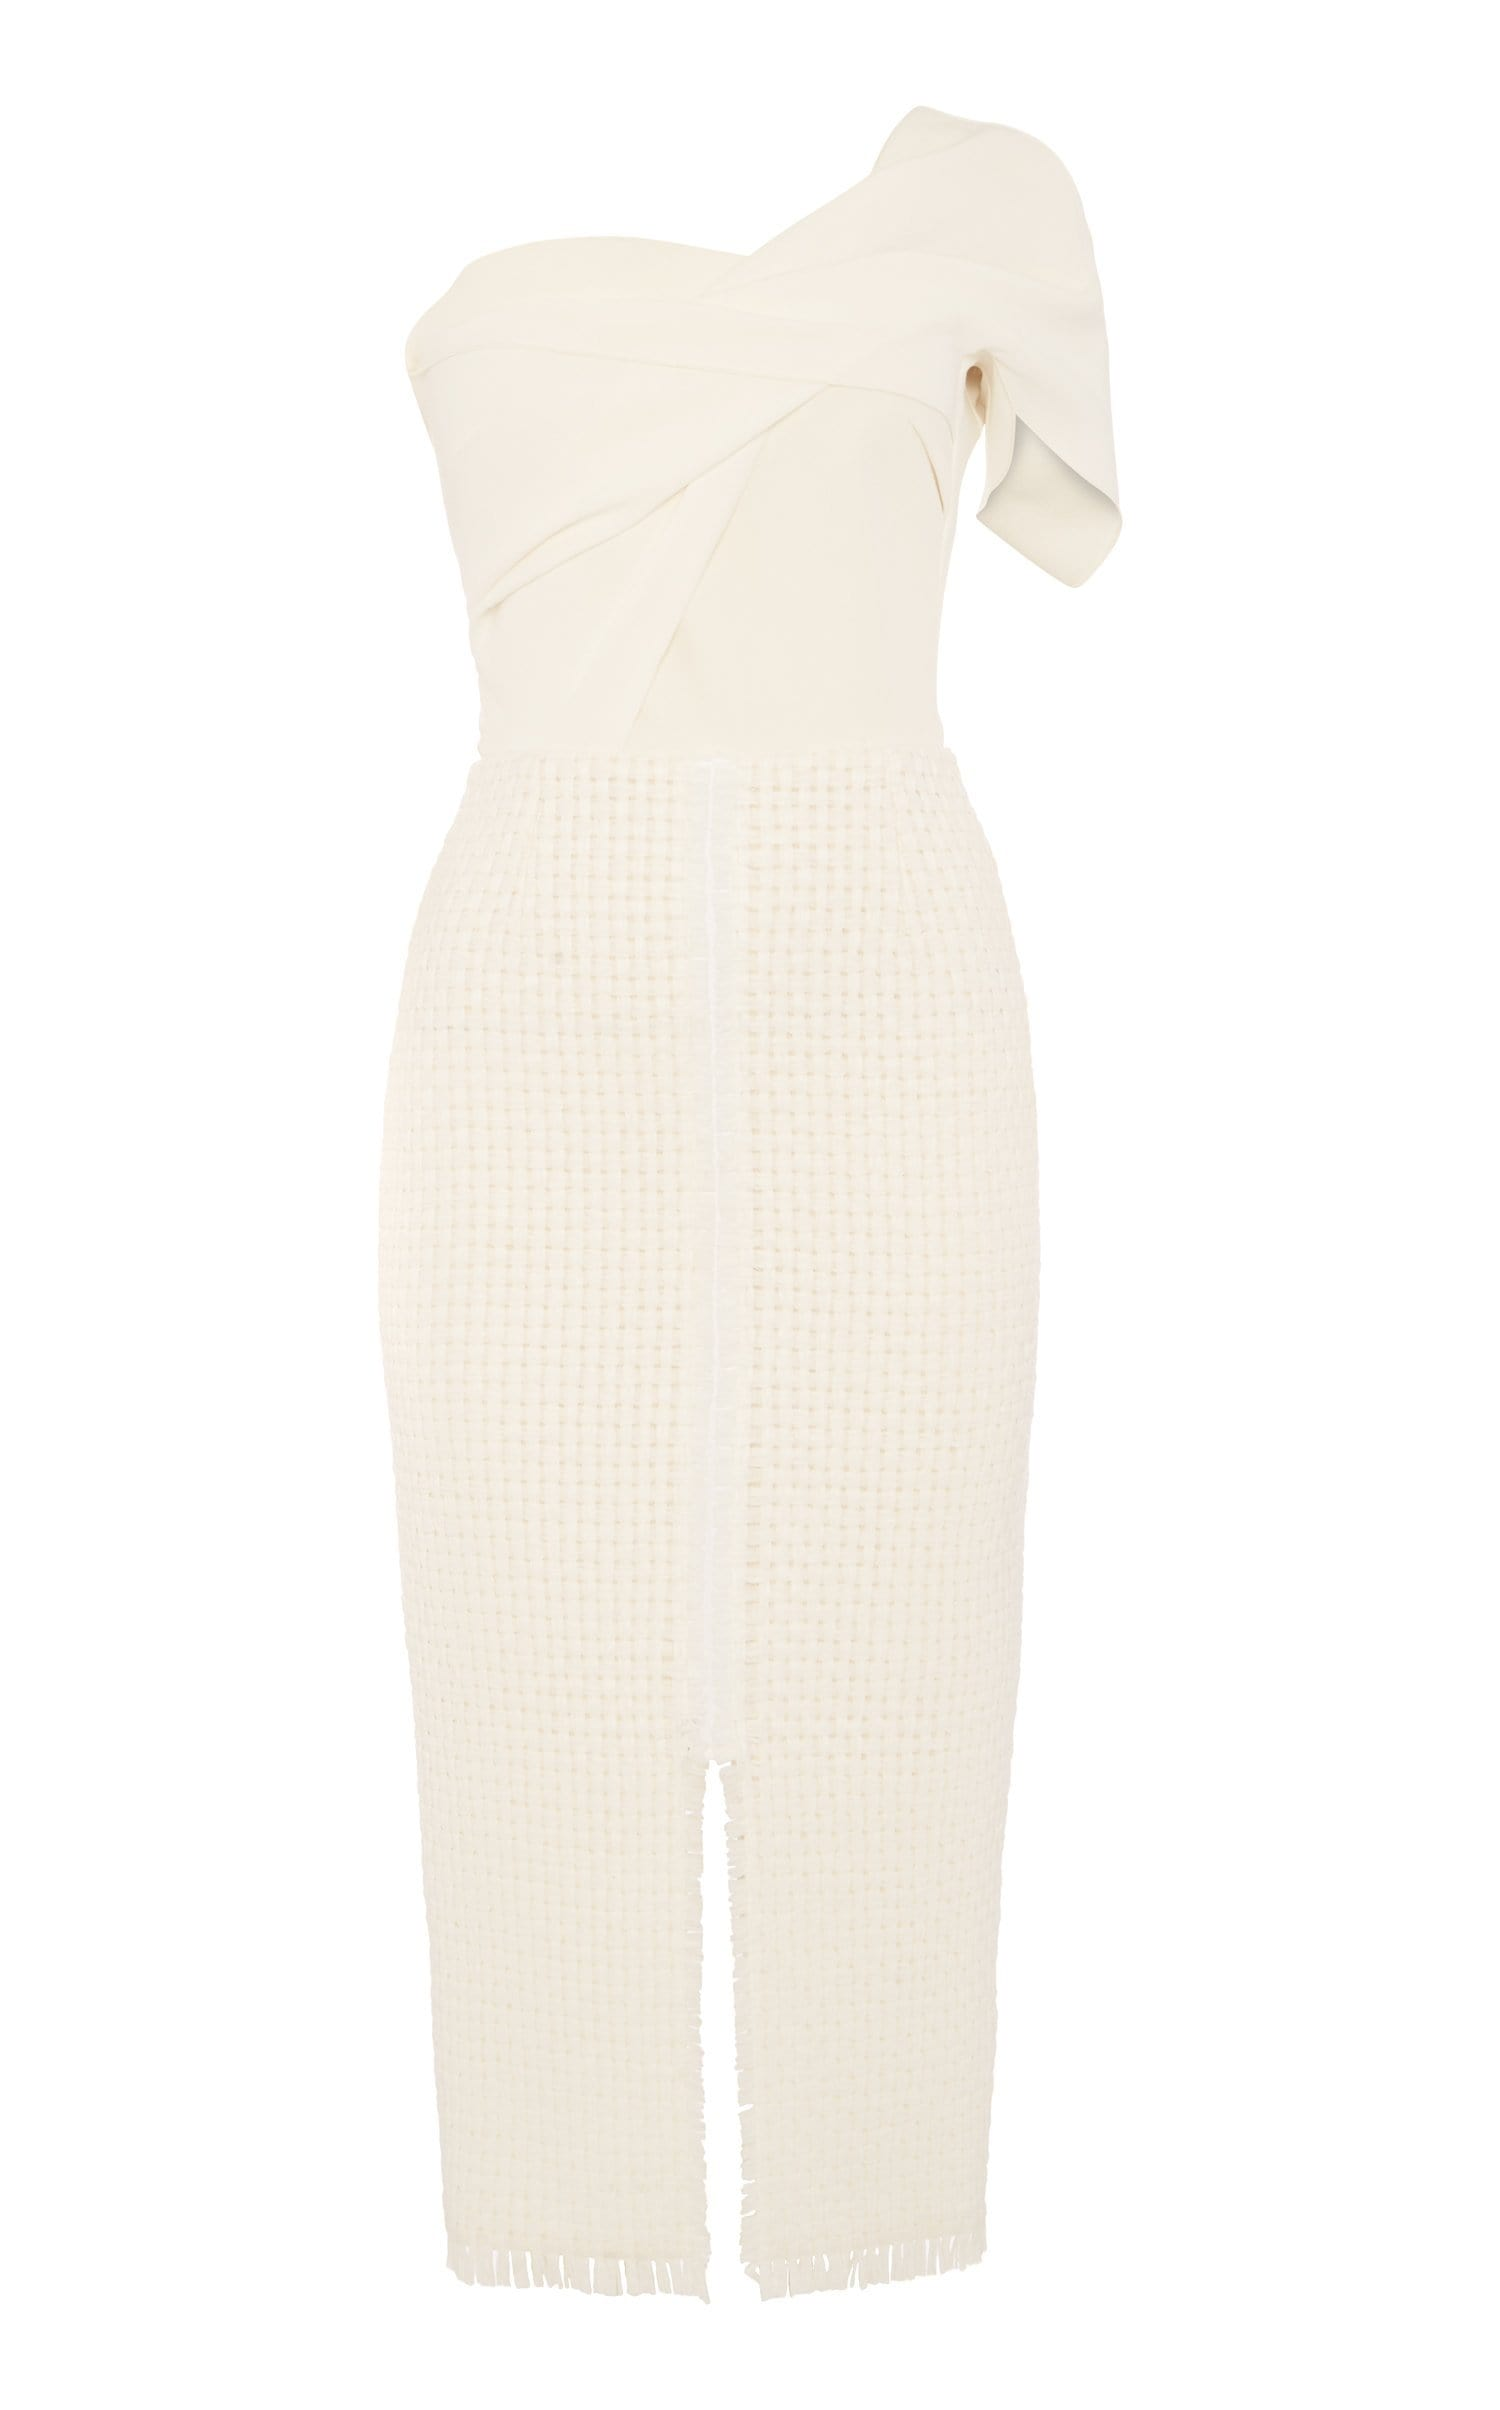 Morita Dress In White from Roland Mouret